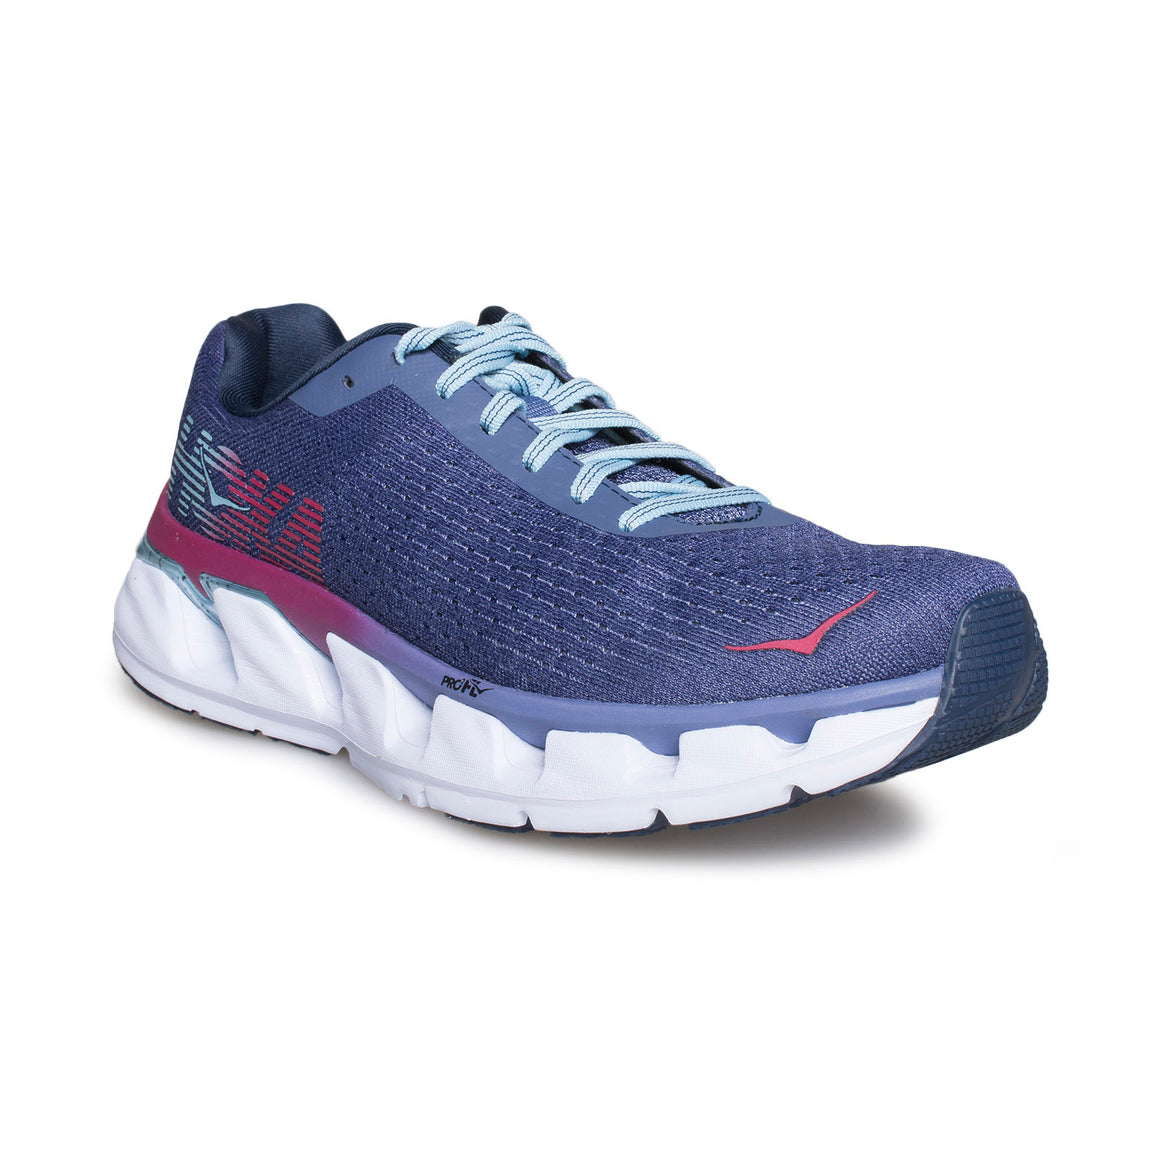 Hoka One One Elevon Marlin / Blue Ribbon Running Shoes - Women's